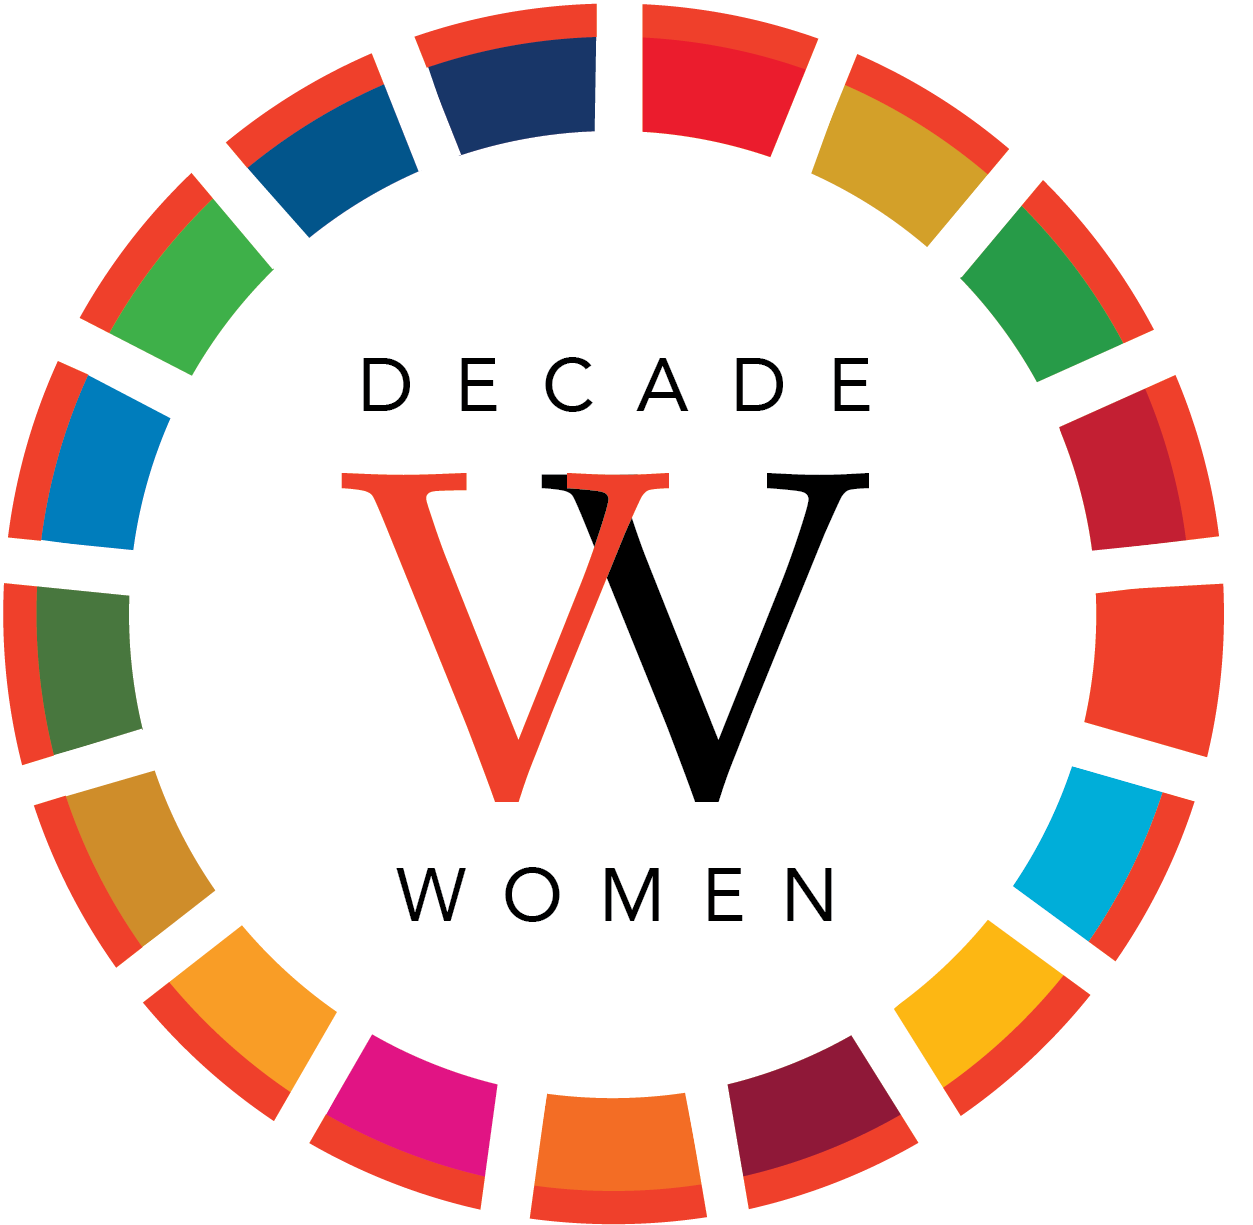 GLOBAL IMPACT GAMIFICATION CAMPAIGN TO BENEFIT OCEANS ANNOUNCED AT DECADE OF WOMEN FORUM IN ICELAND